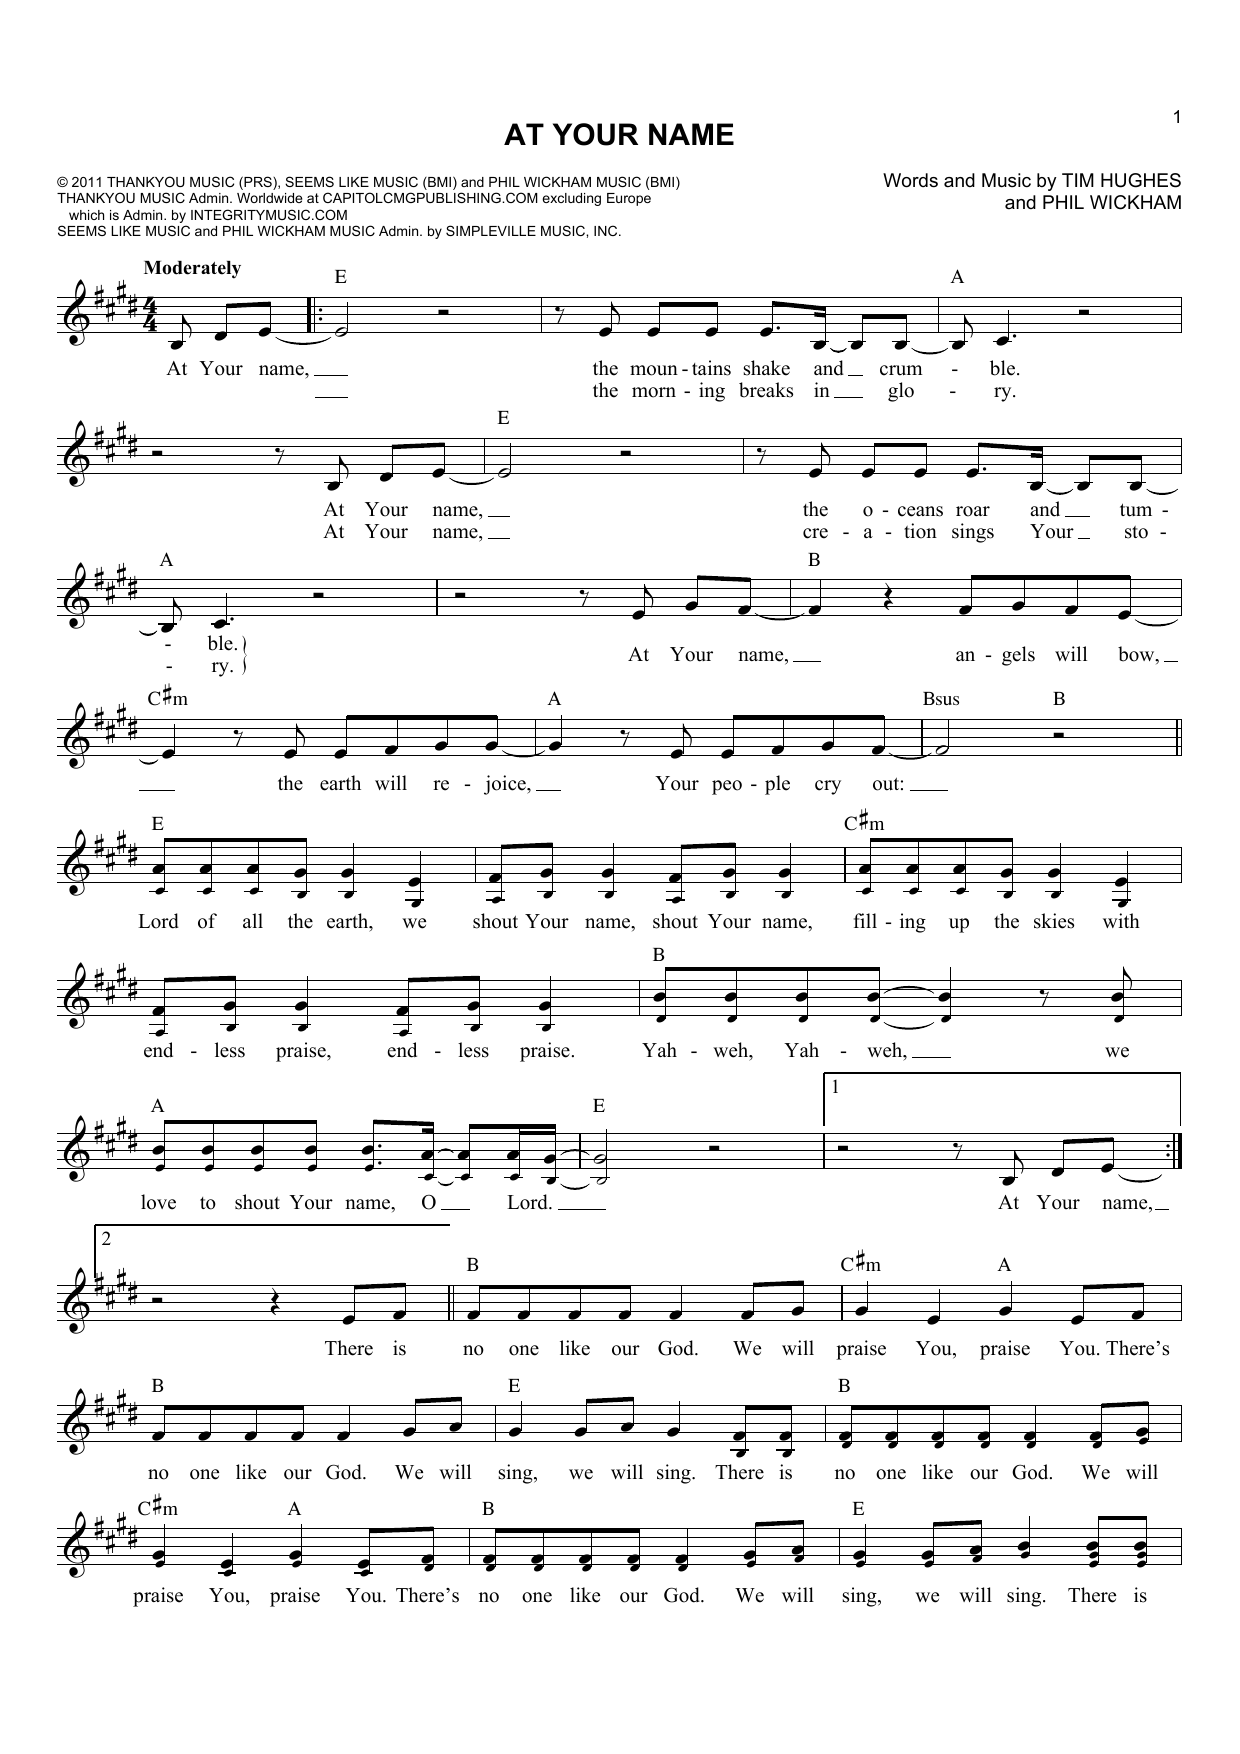 Tim Hughes At Your Name sheet music notes and chords. Download Printable PDF.